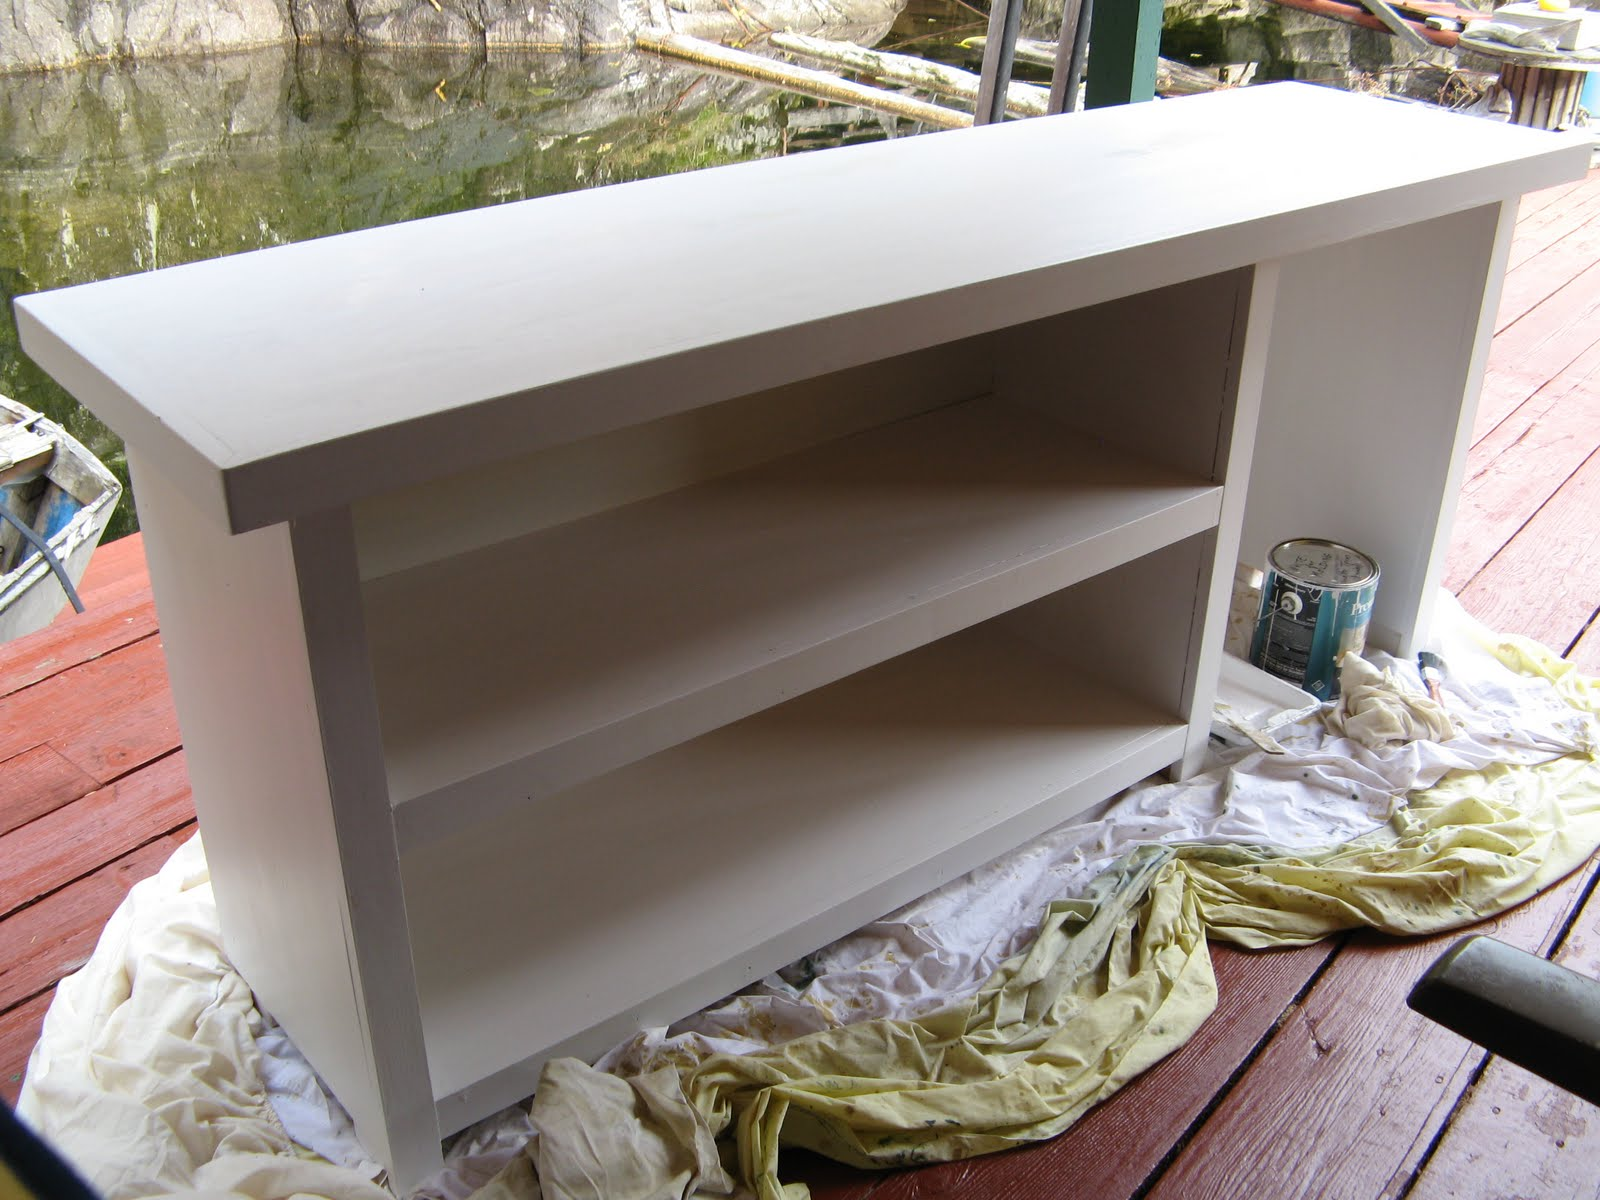 Kitchen Magician Tall Bin Powell River Books Blog John Is Like A At Everything He Does I Let Him Know What Need And Makes It Happen Magic Our Storage Counter Shelf Are Two